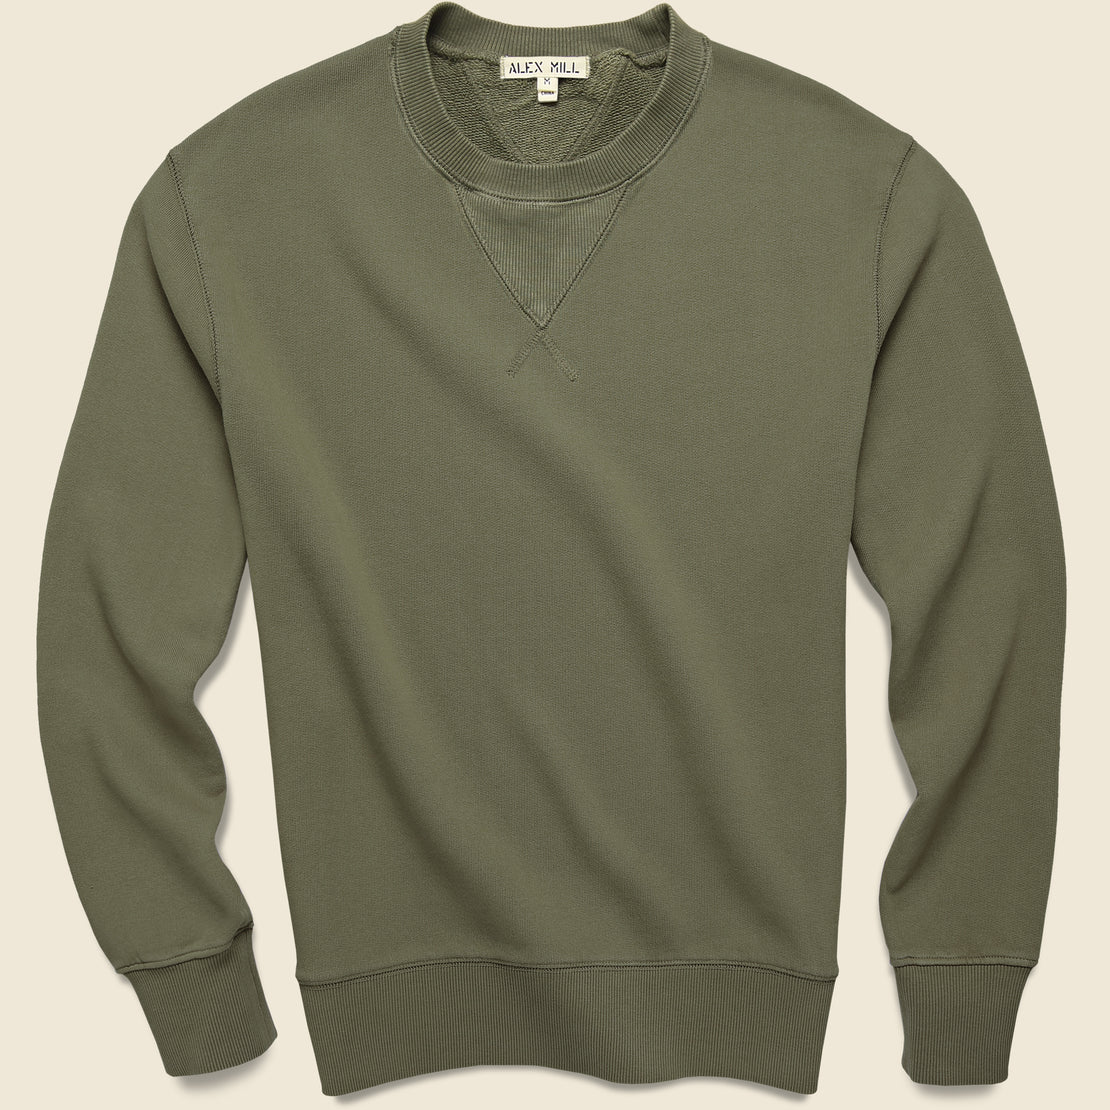 Alex Mill Crewneck Sweatshirt - Olive